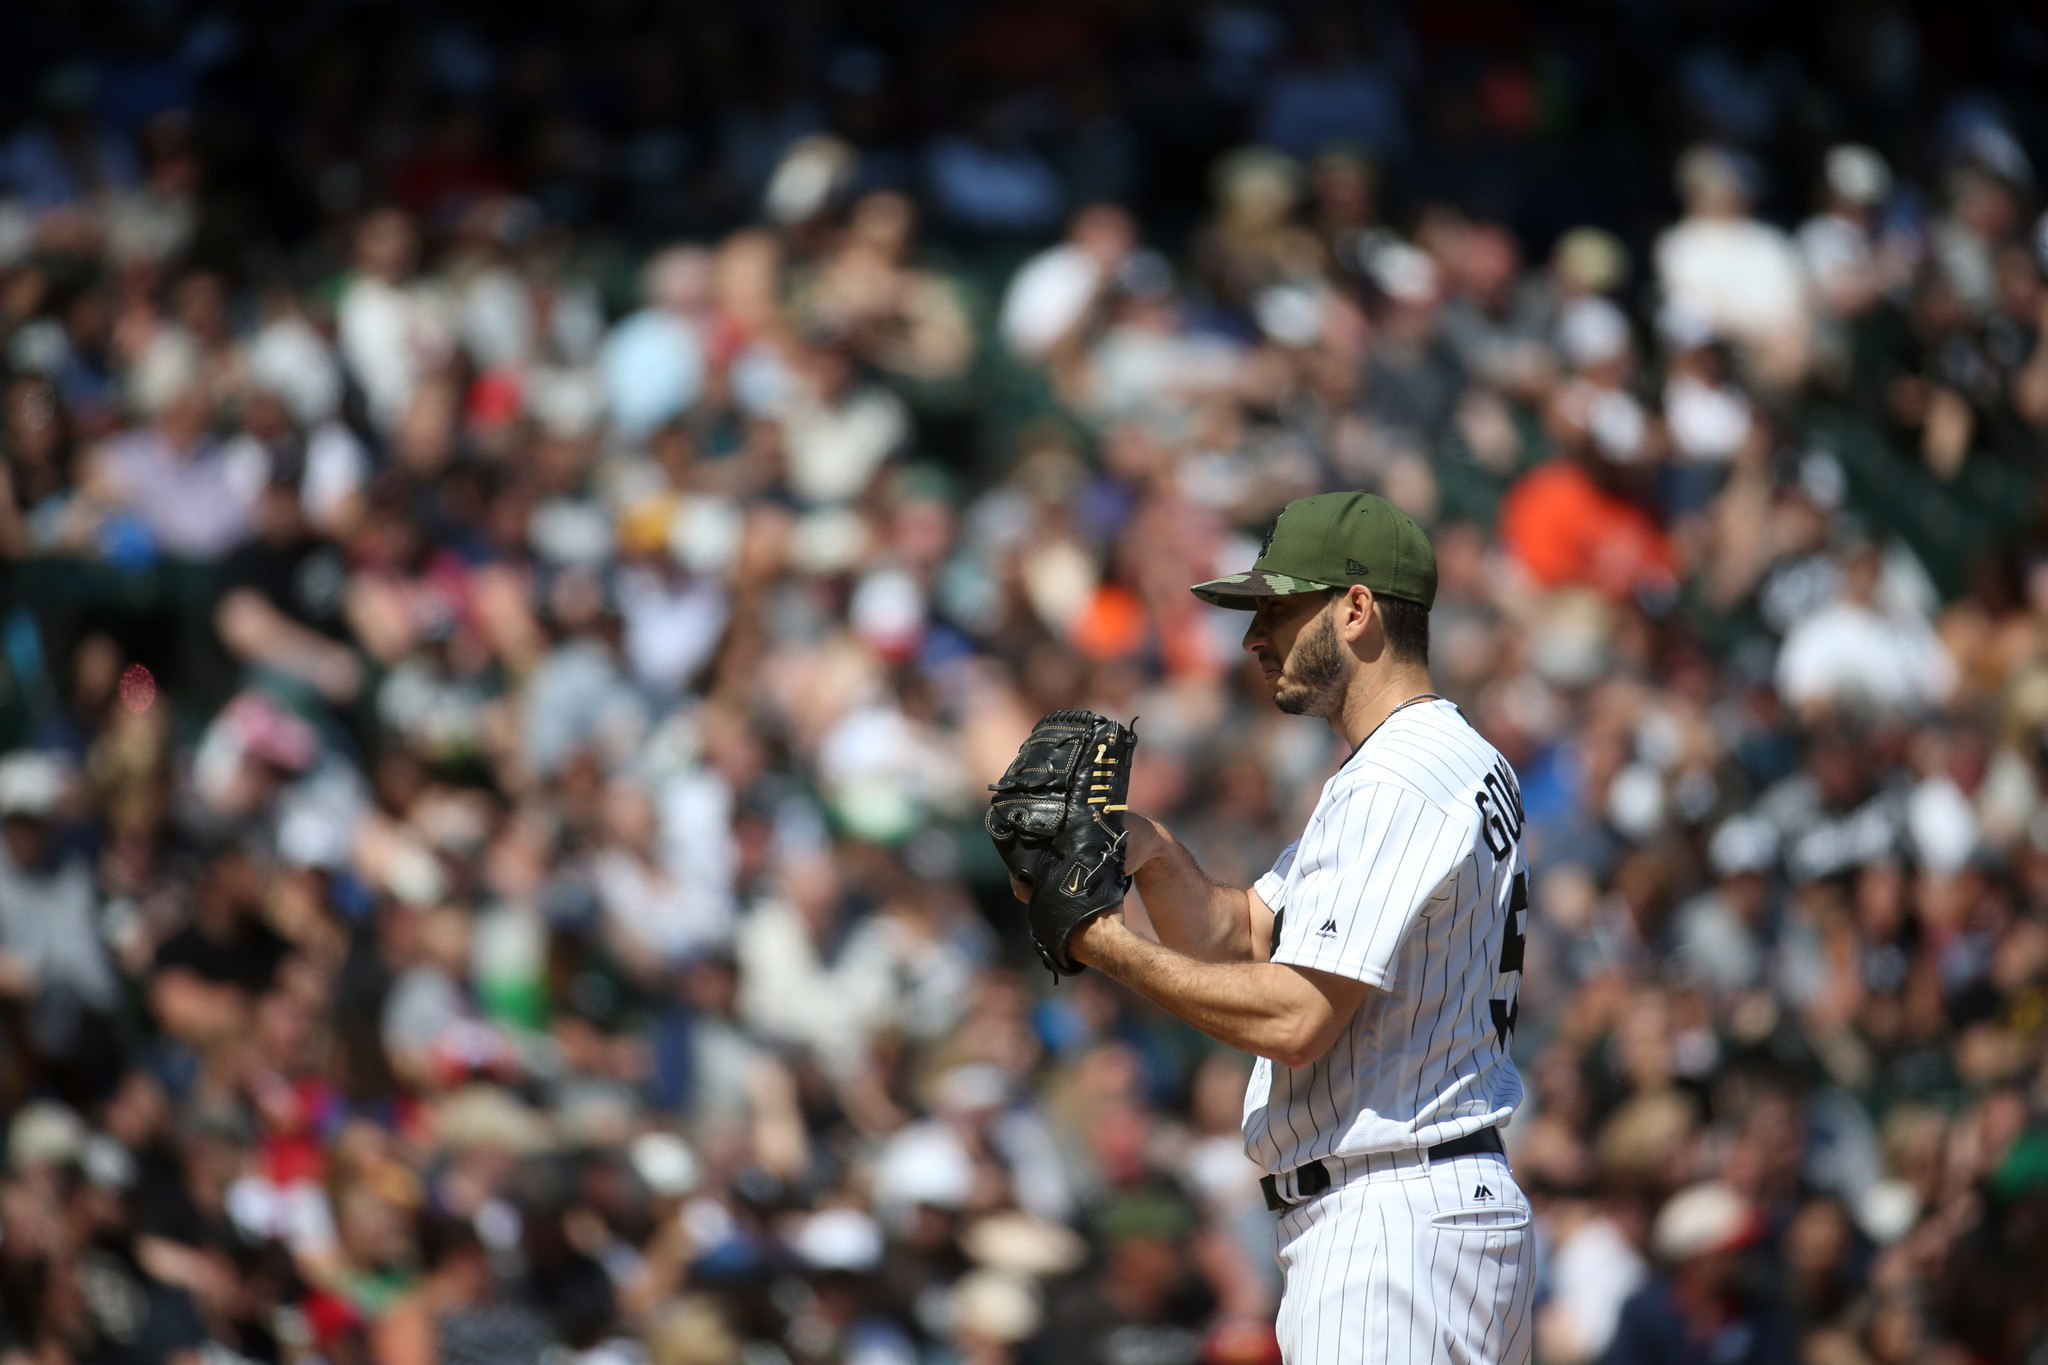 Ct-white-sox-tigers-spt-0529-20170528